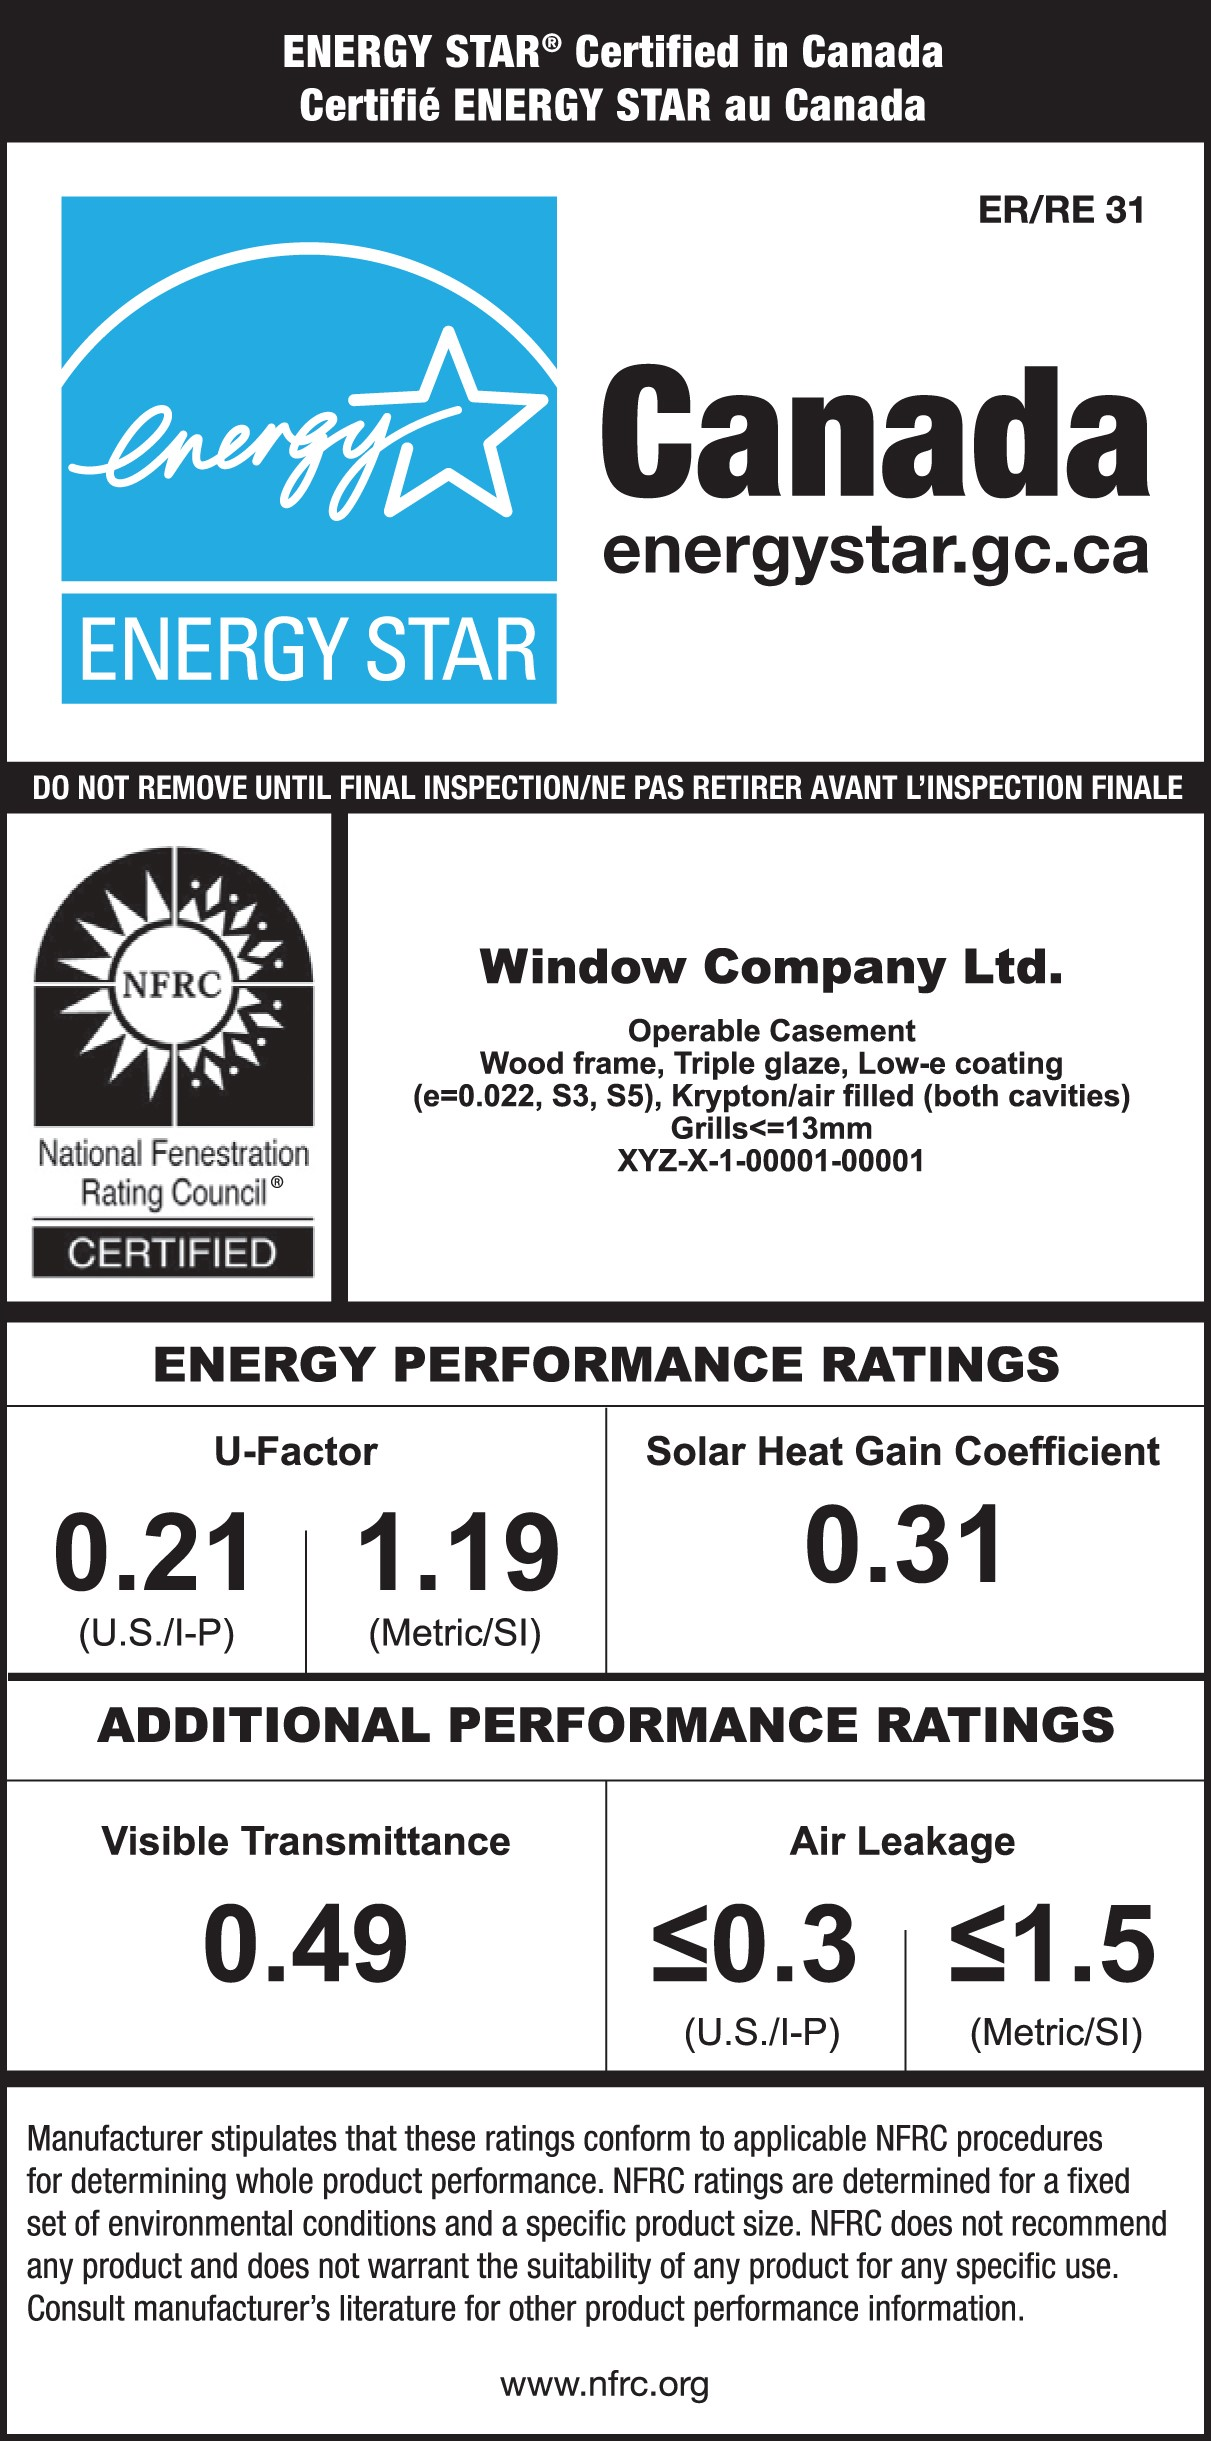 Sample ENERGY STAR / NFRC temporary label for a window. The ENERGY STAR portion has an ENERGY STAR certification mark and text indicating that the product is certified for all of Canada.  The NFRC portion has a NFRC certification mark and the product's specific performance ratings, brand name and model description.